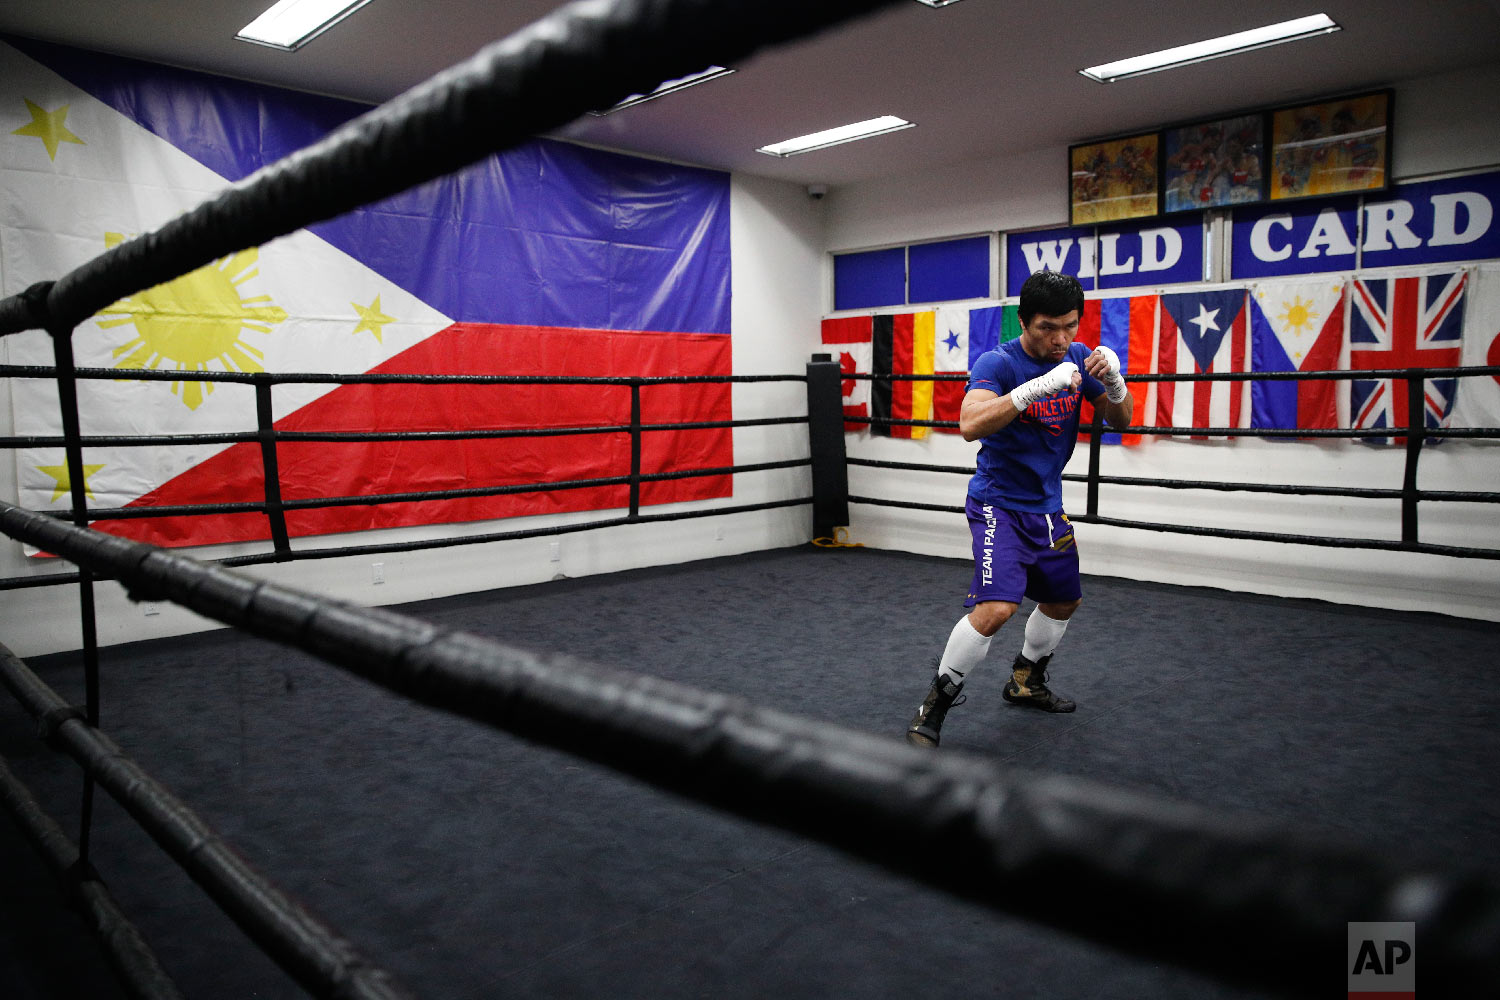 Boxer Manny Pacquiao shadow boxes during a workout at the Wild Card Boxing Club on Jan. 14, 2019, in Los Angeles. (AP Photo/Jae C. Hong)